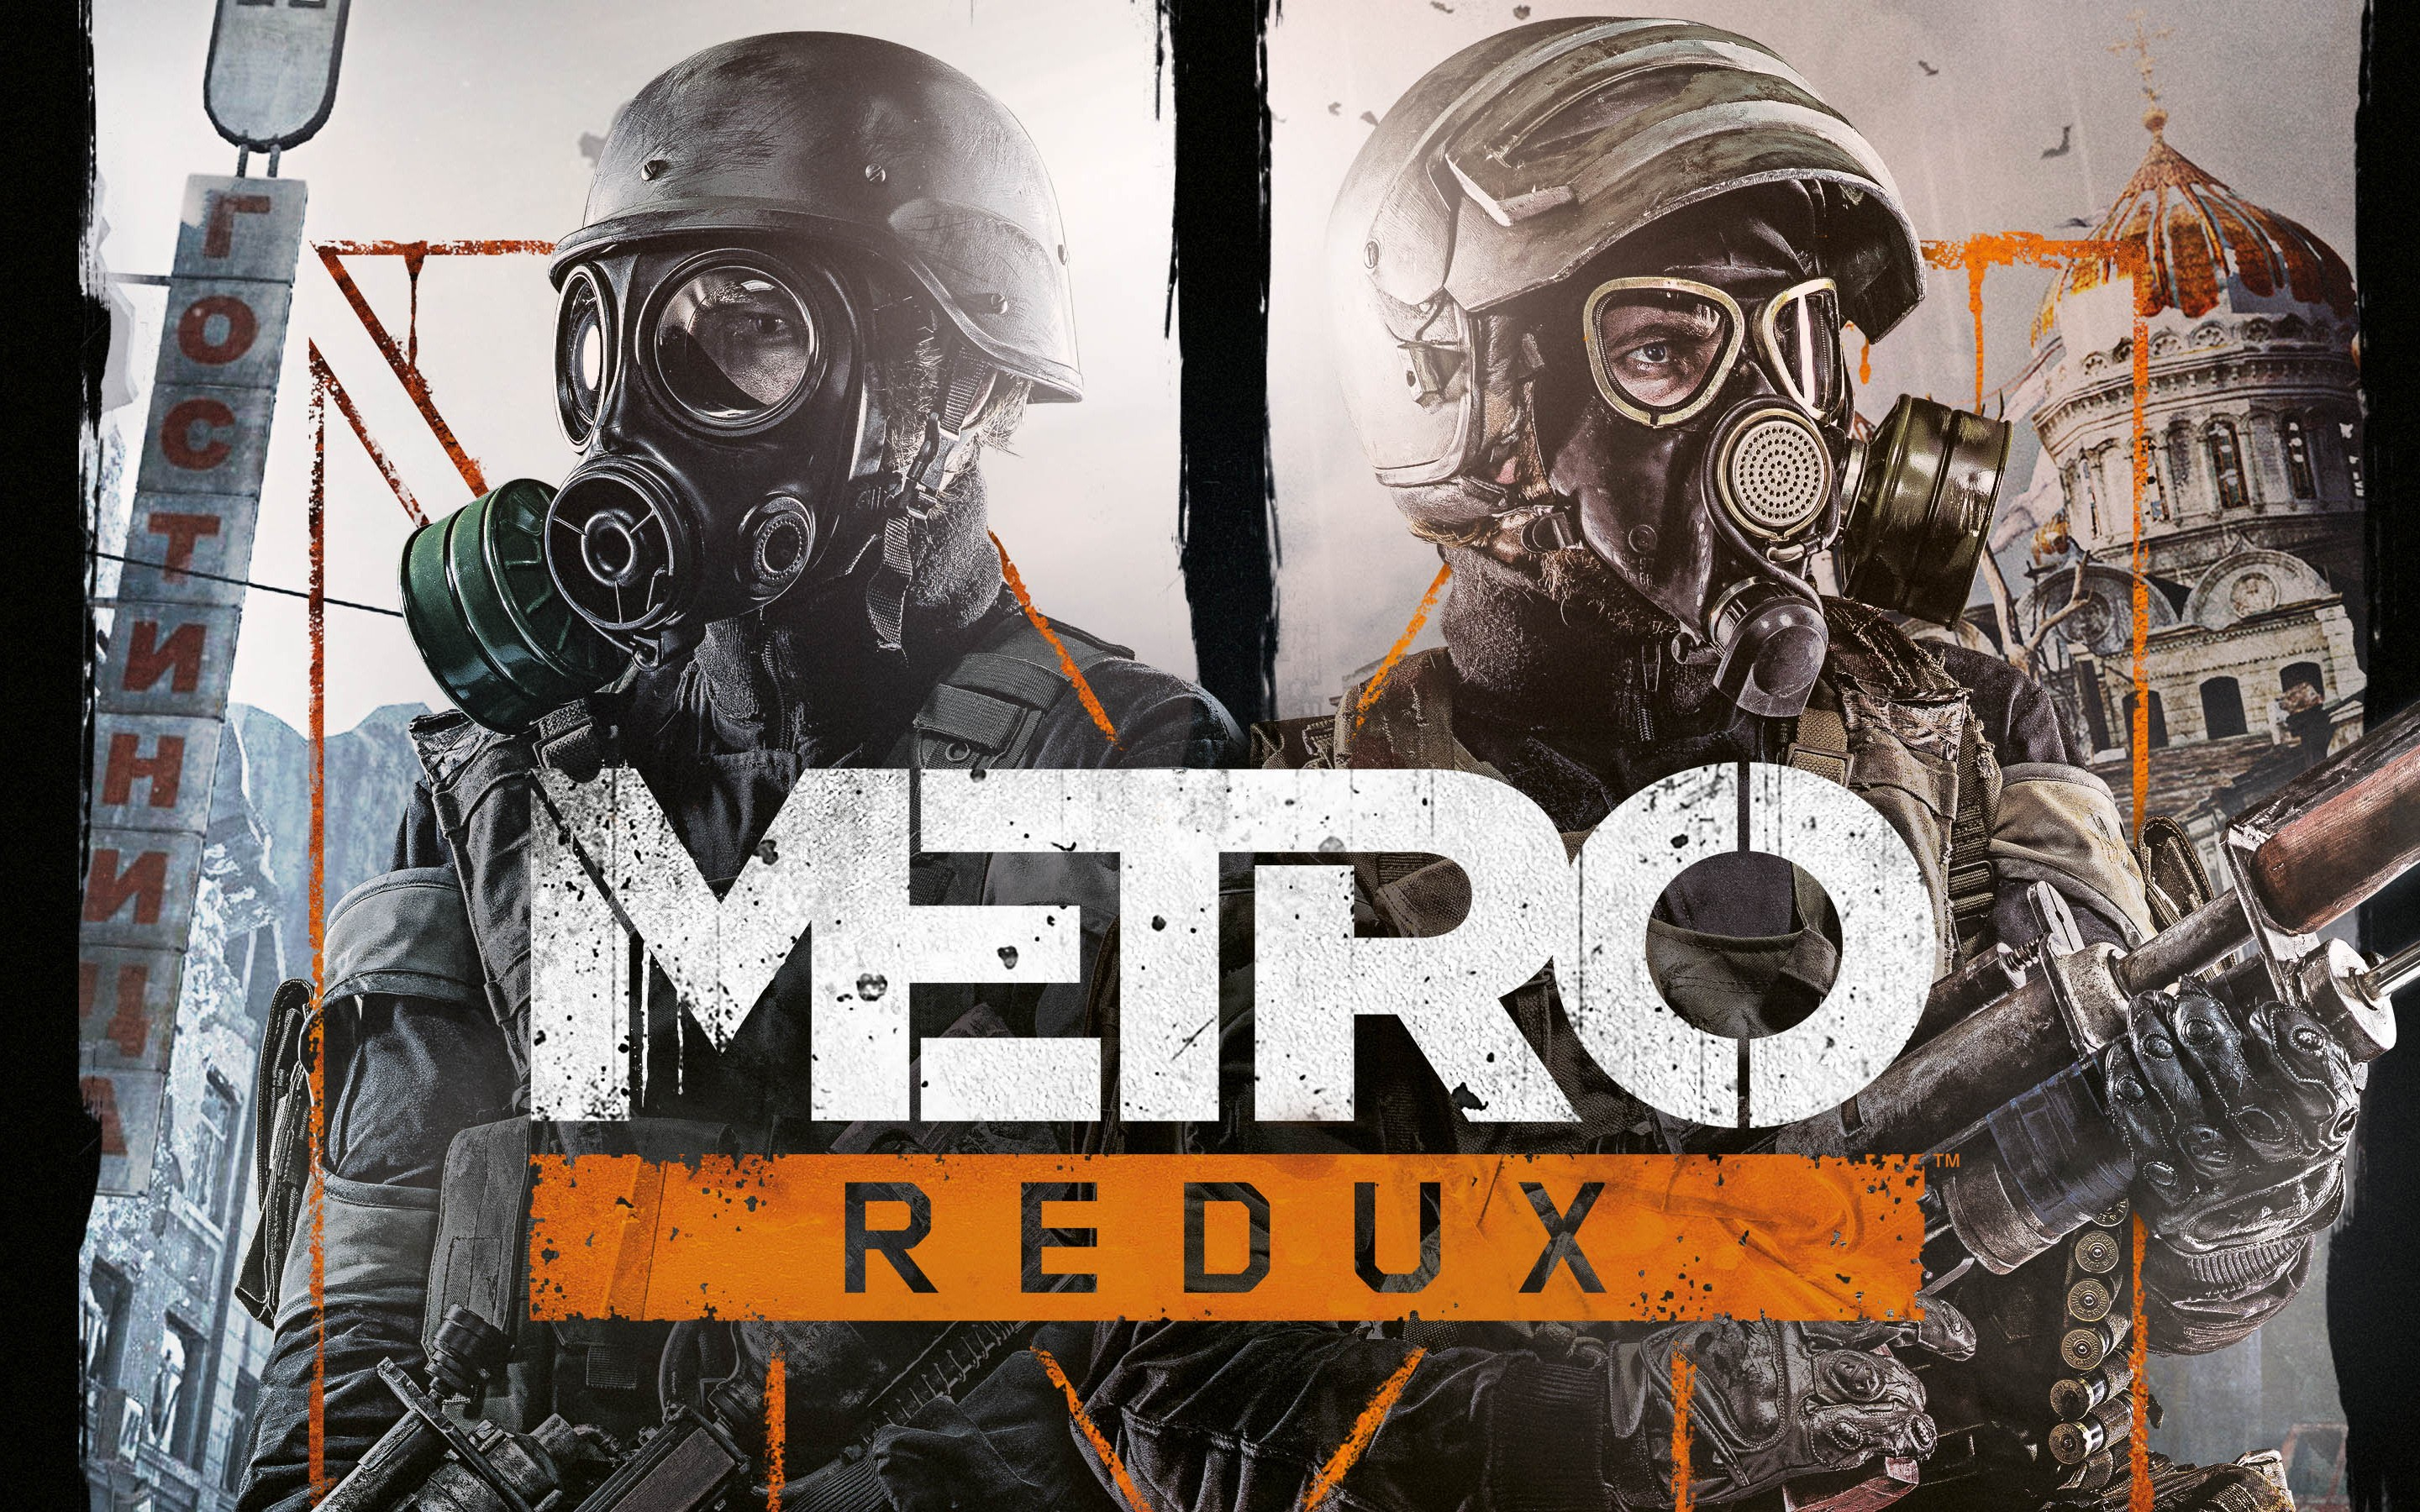 Metro-2033-Redux-and-Metro-Last-Light-Redux-Finally-Arrive-on-Linux-Get-Major-Discount-467267-2